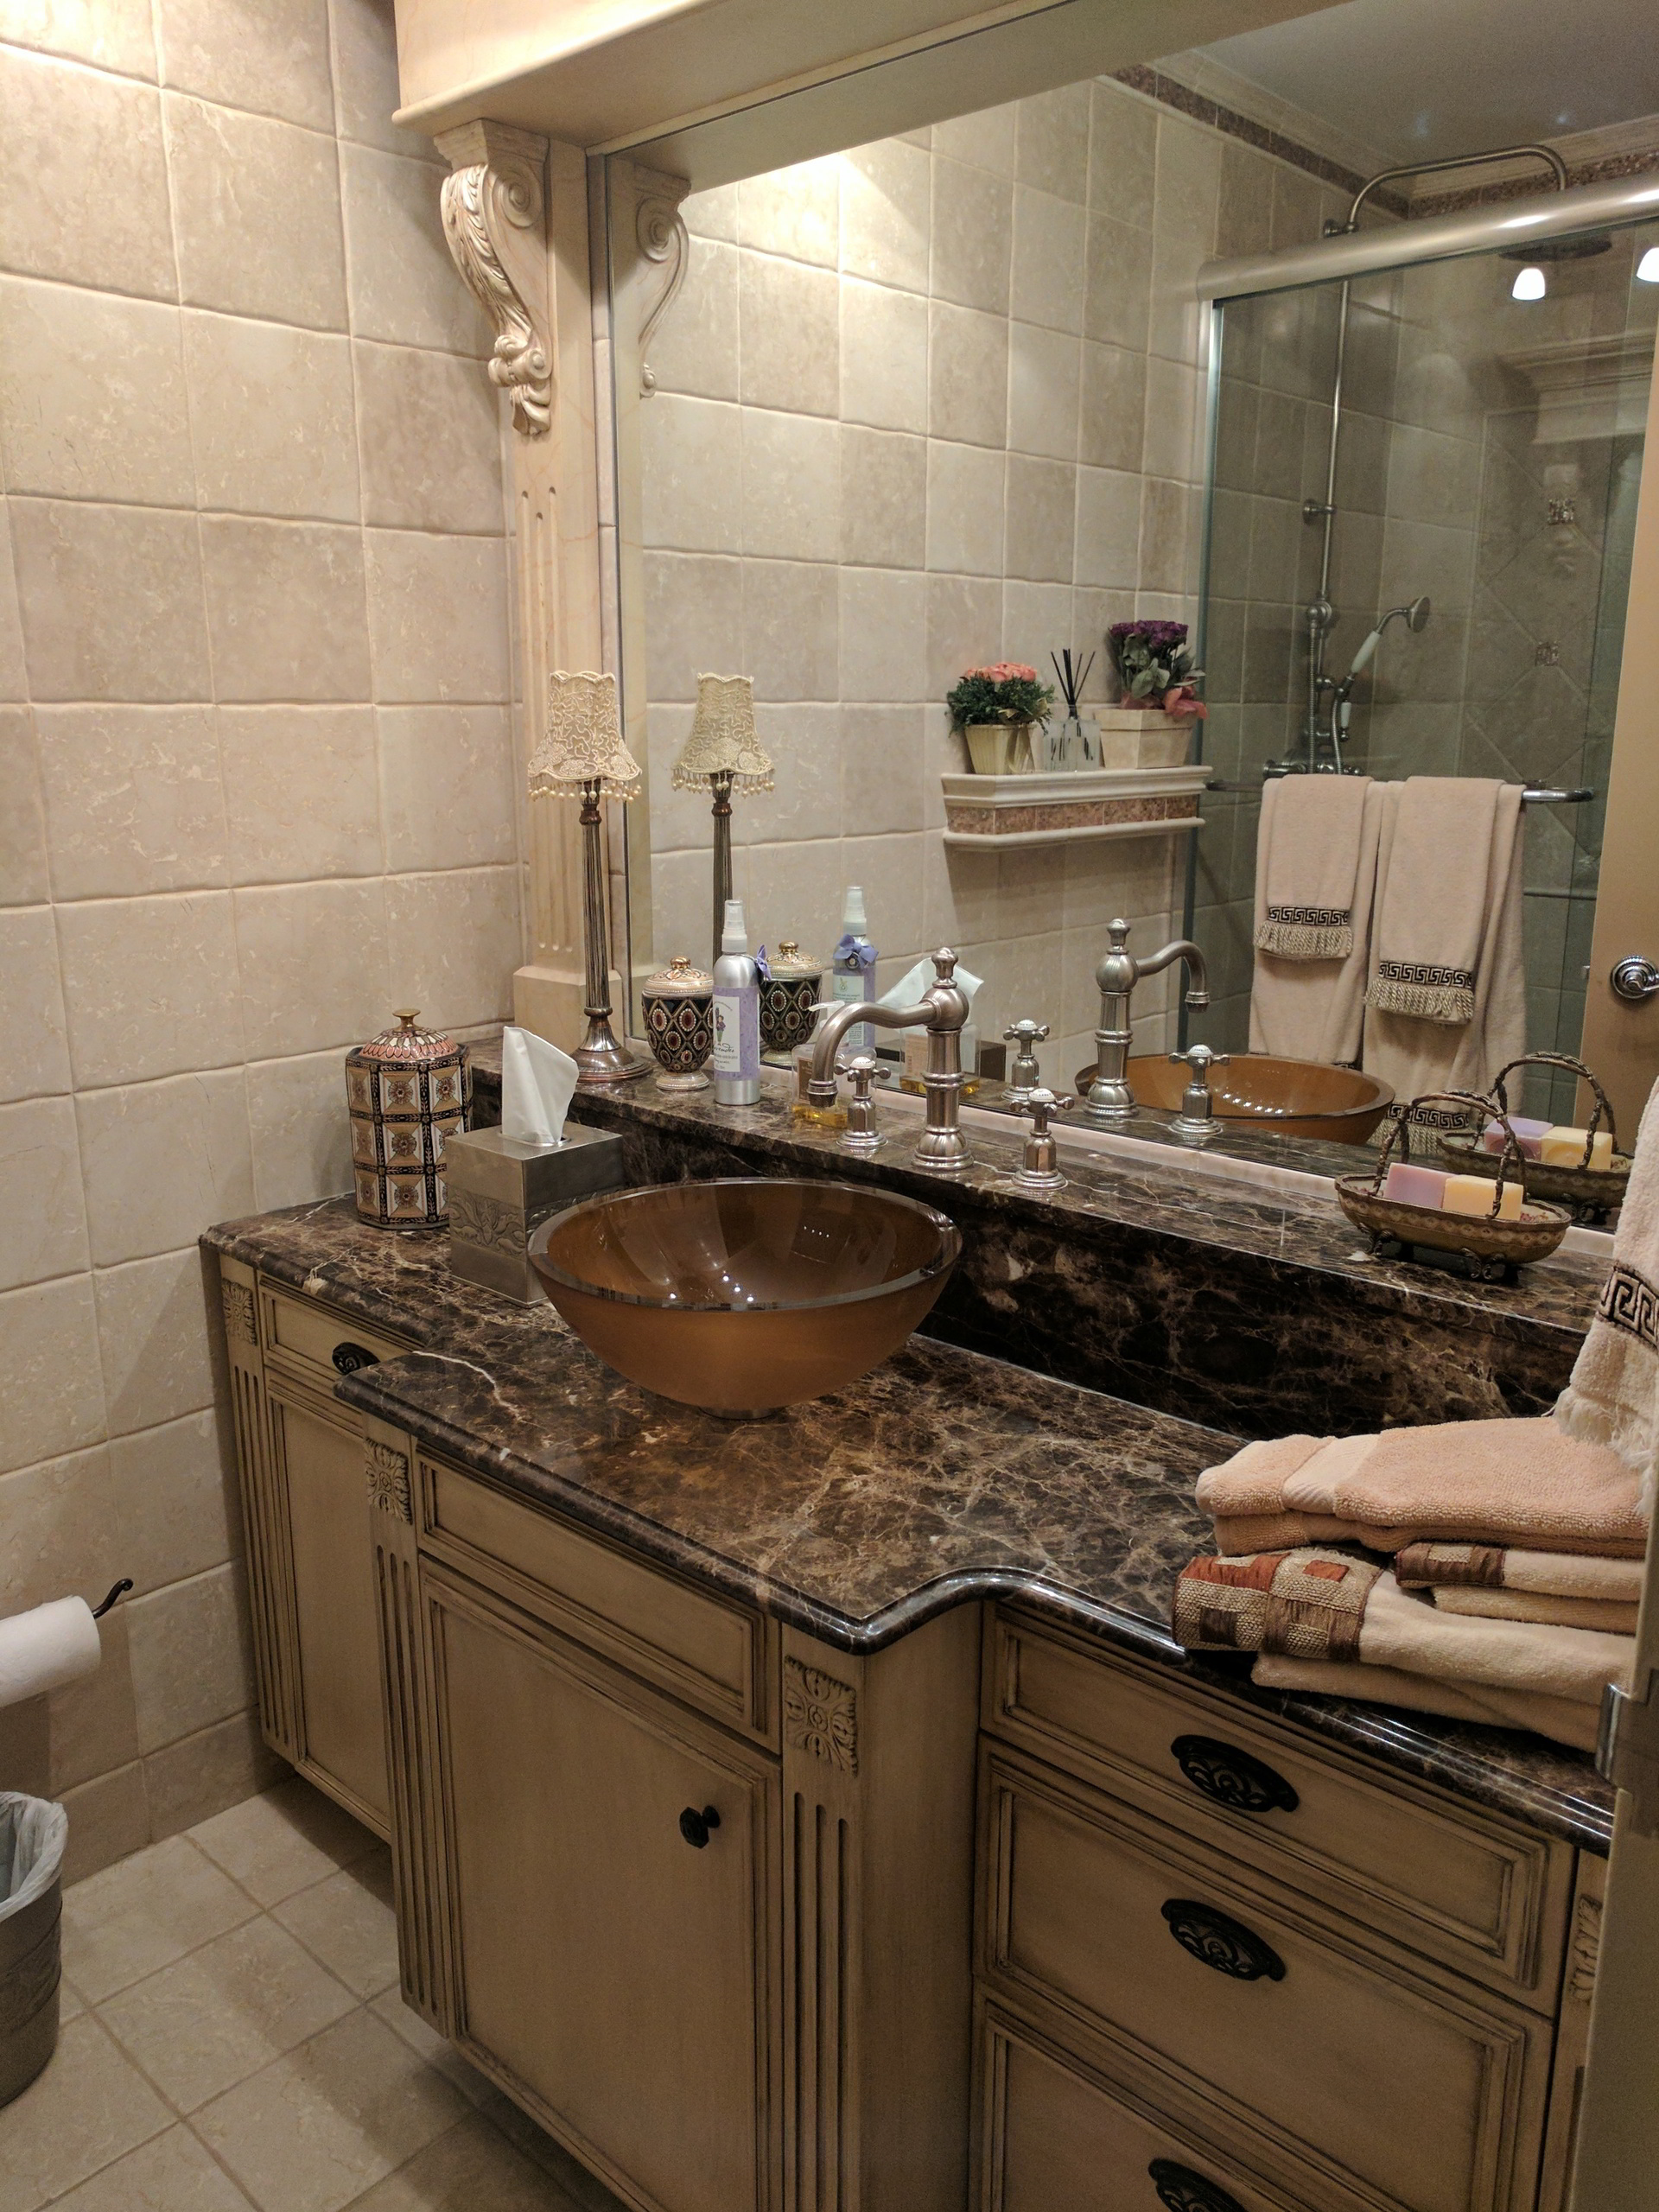 Bathroom Design Remodeling Renovations In Westfield NJ Images - Bathroom fixtures nj